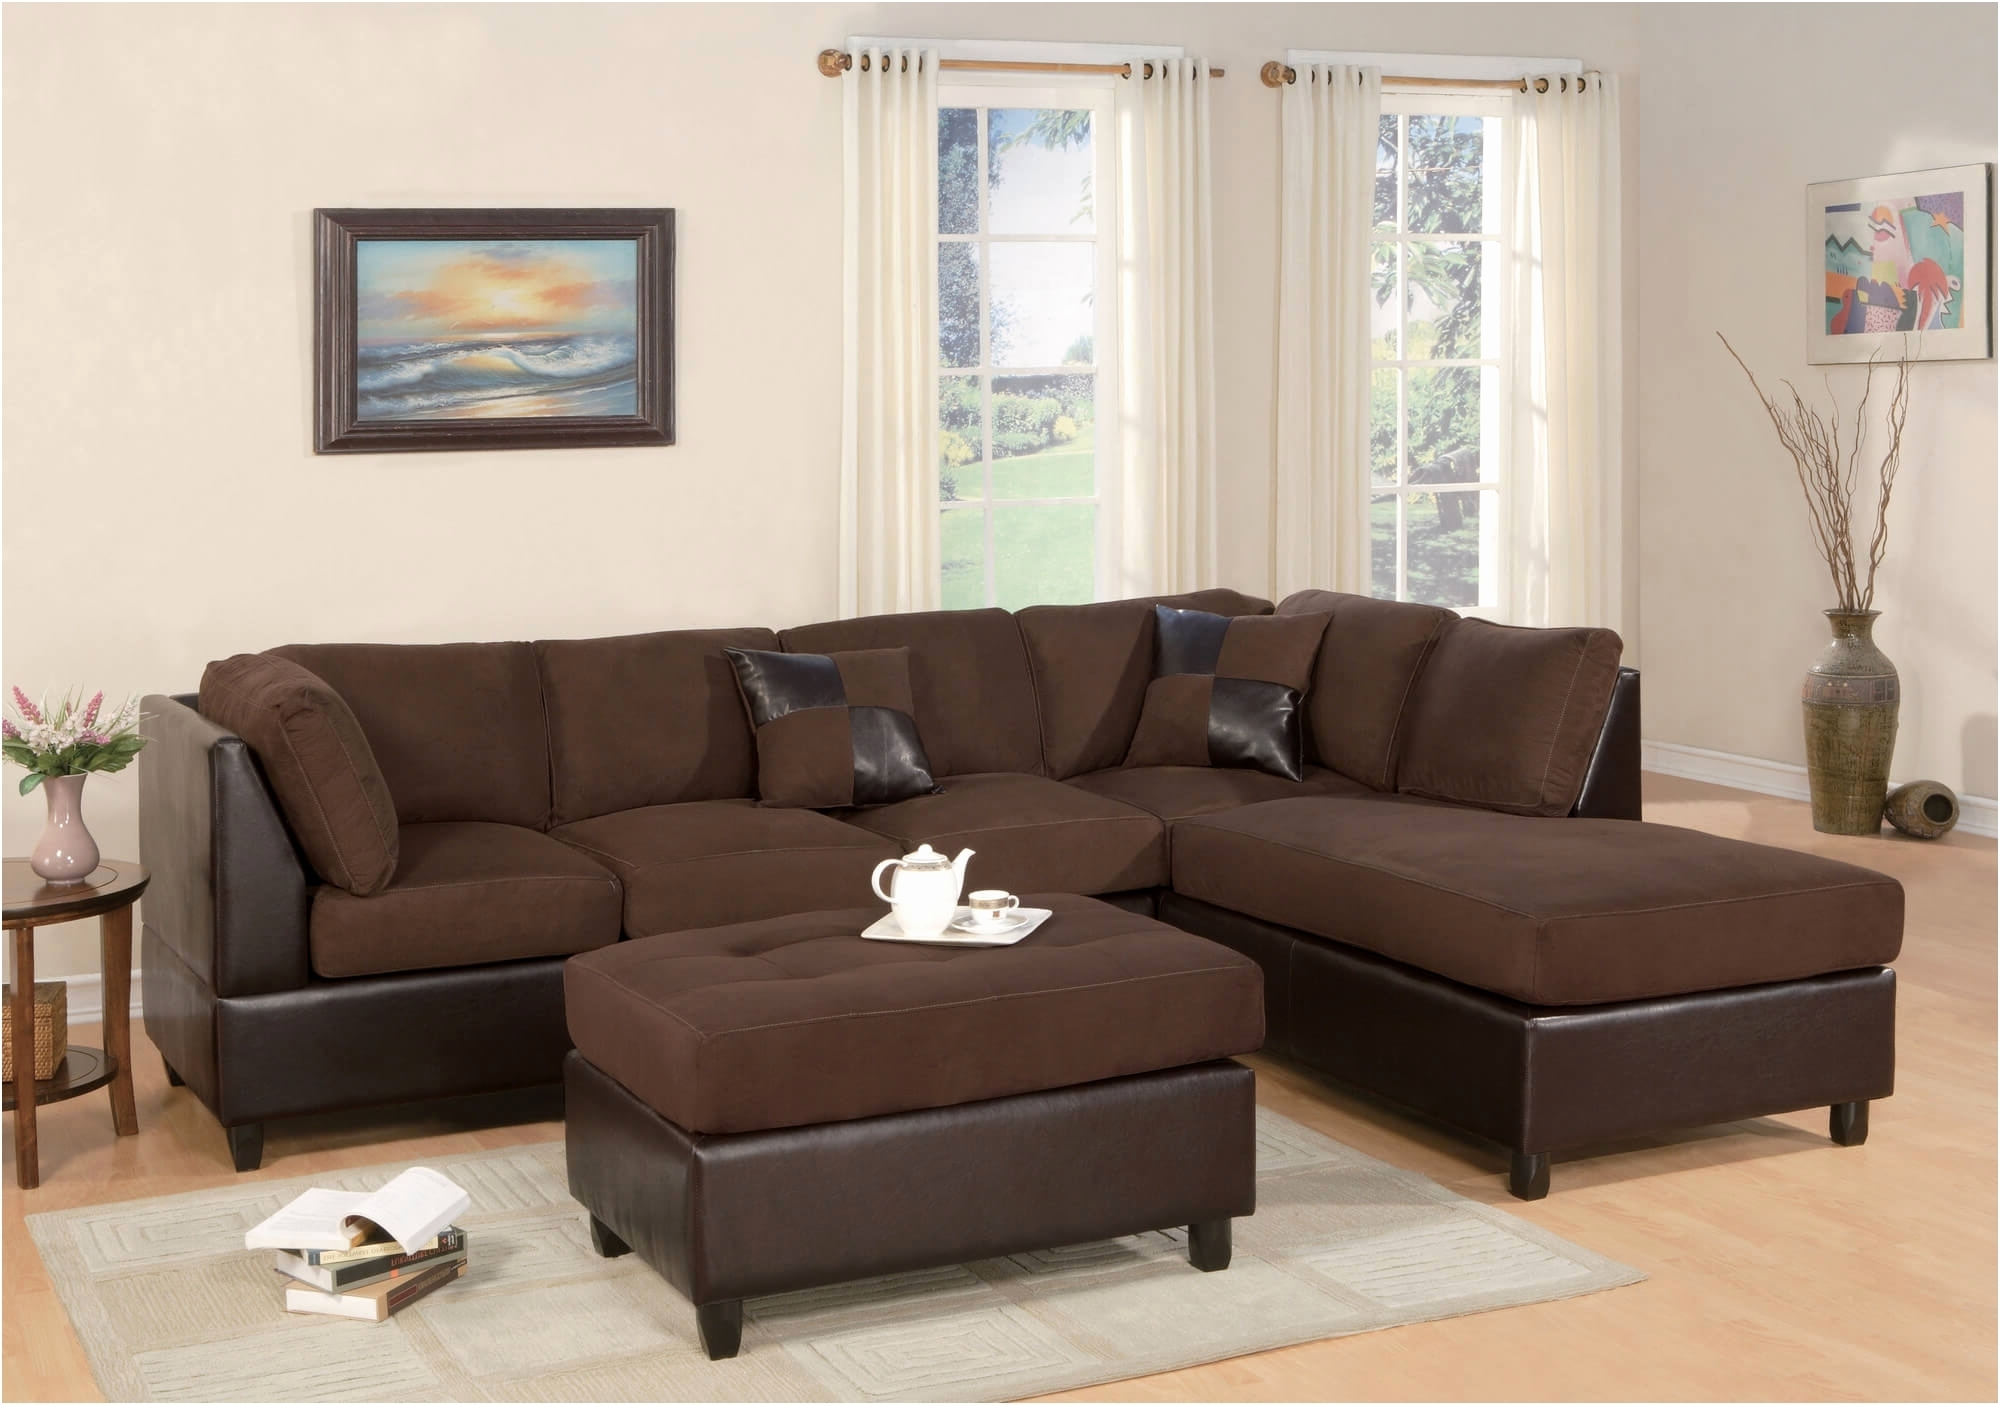 Lovely Sofa Sectionals On Sale Fresh – Sofa Furnitures | Sofa Furnitures With Kingston Ontario Sectional Sofas (View 4 of 10)